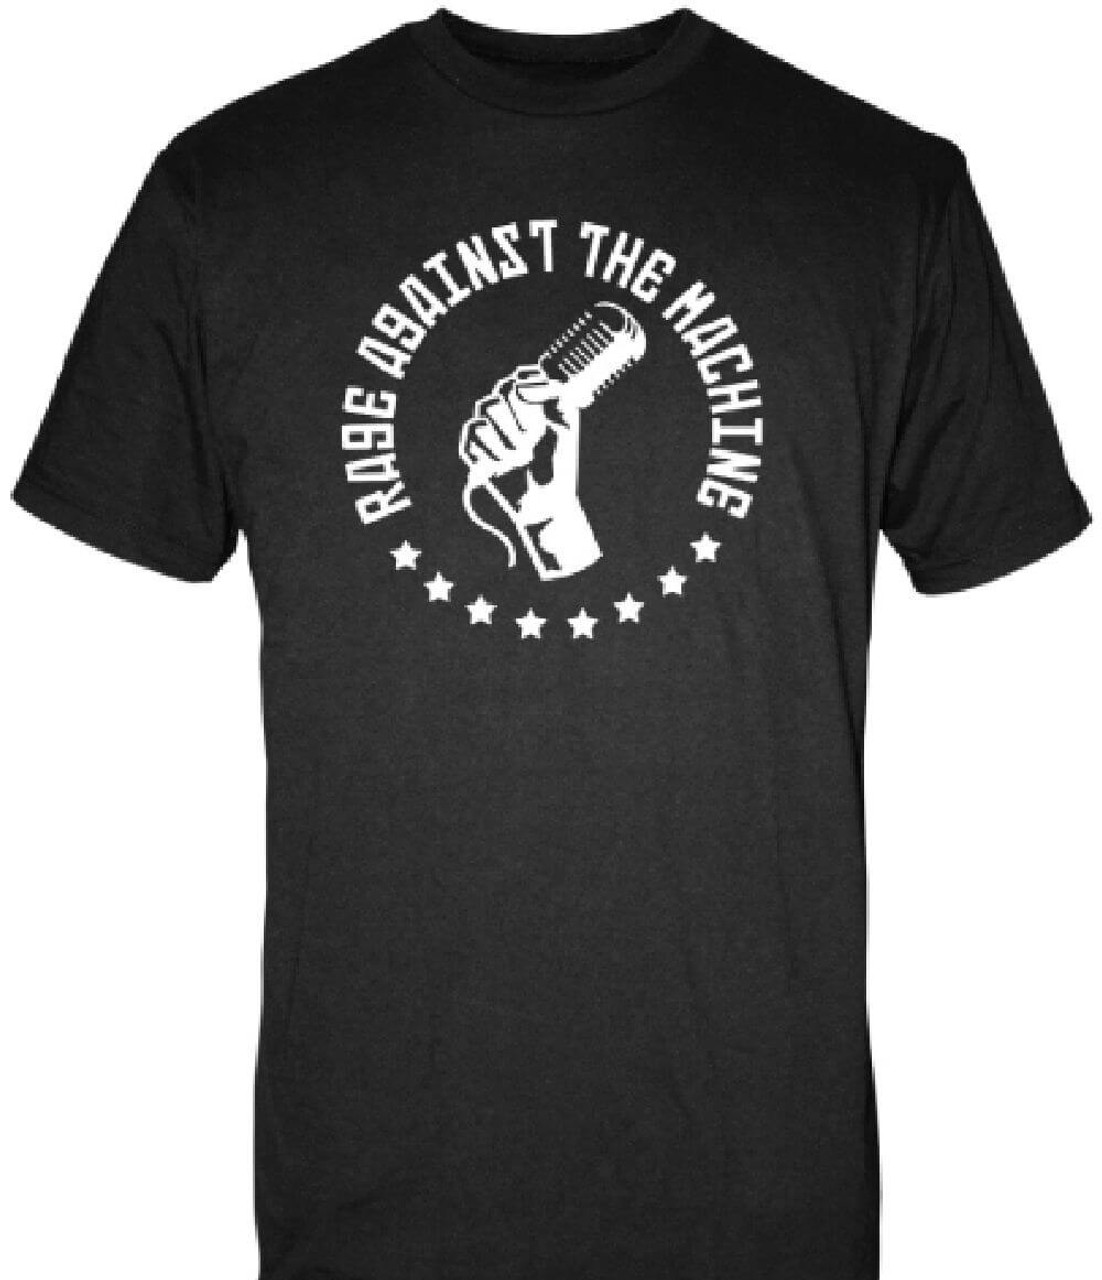 Rage against the machine microphone in fist logo t shirt for My logo on a shirt